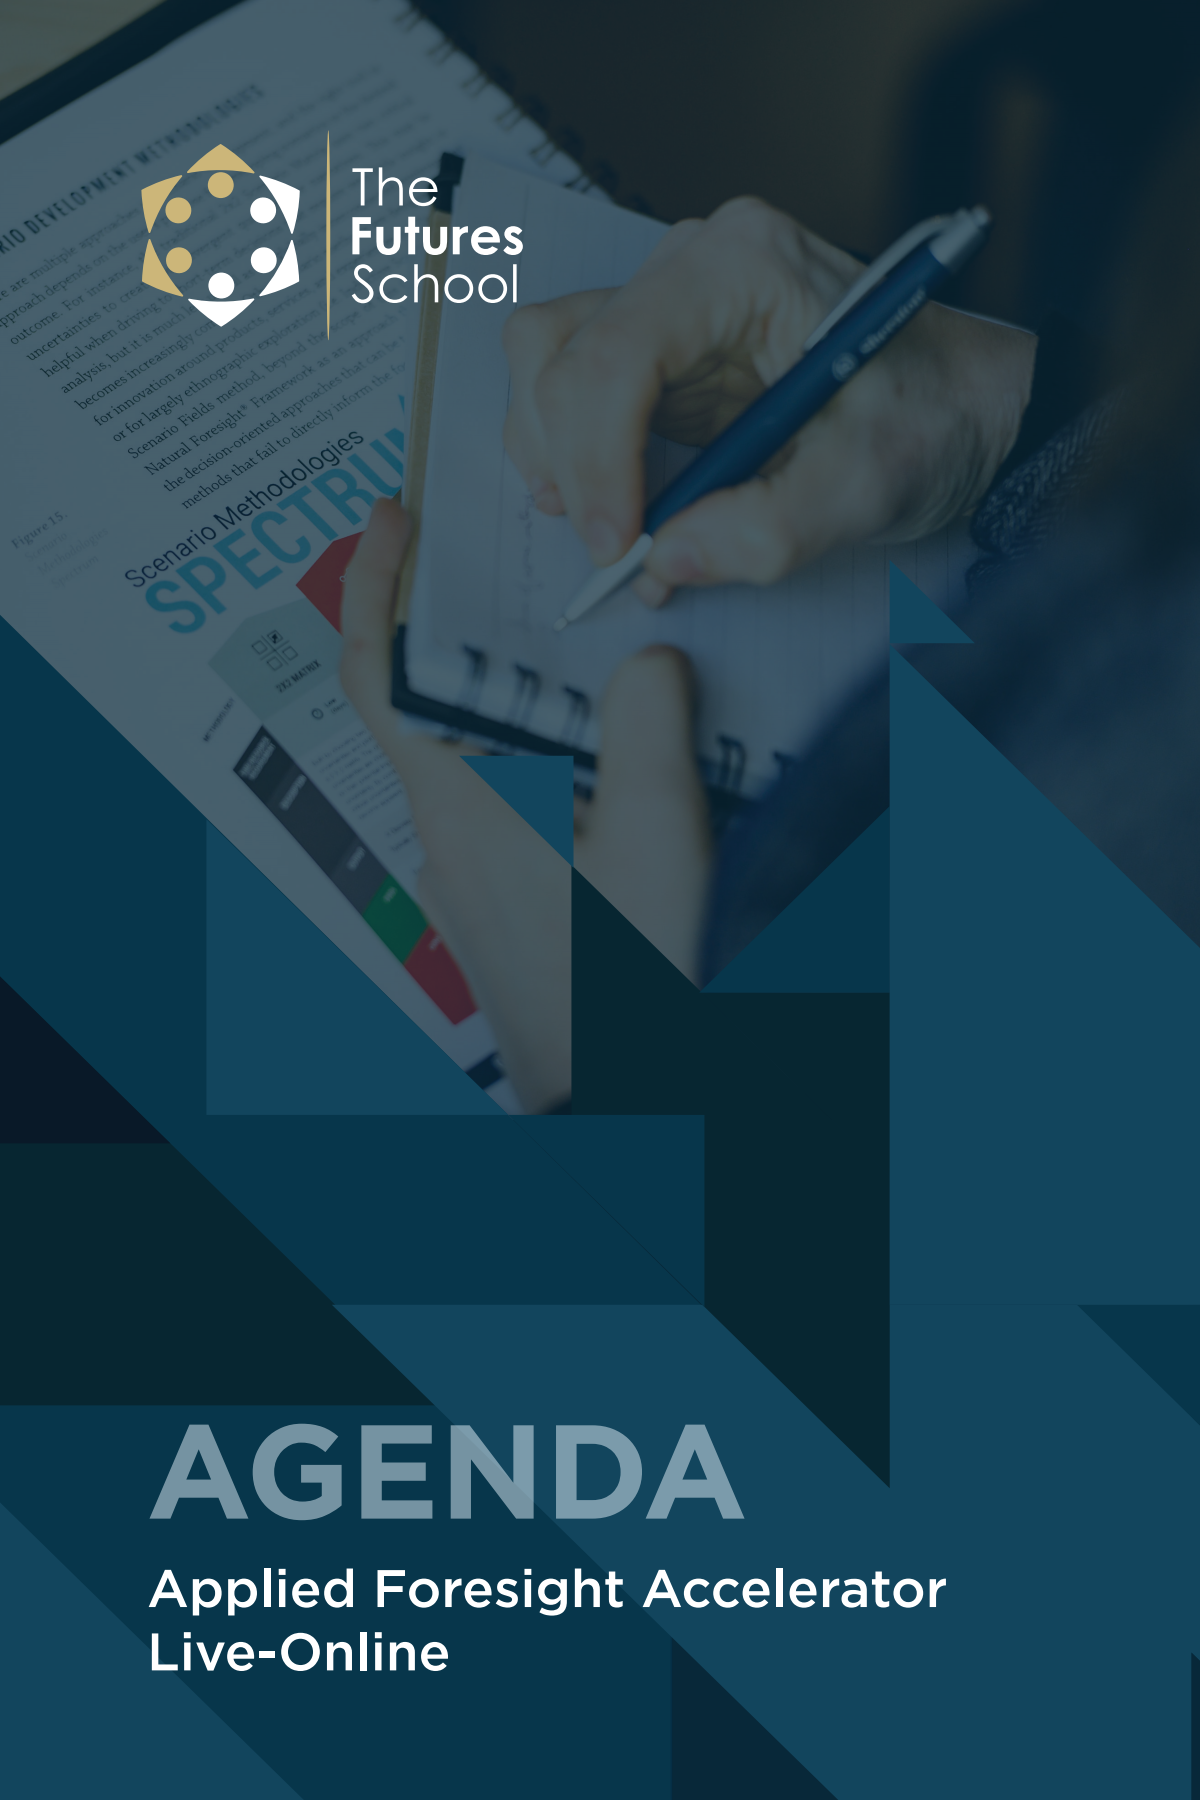 Agenda for our Welcome Kit (Accelerator ONLINE)